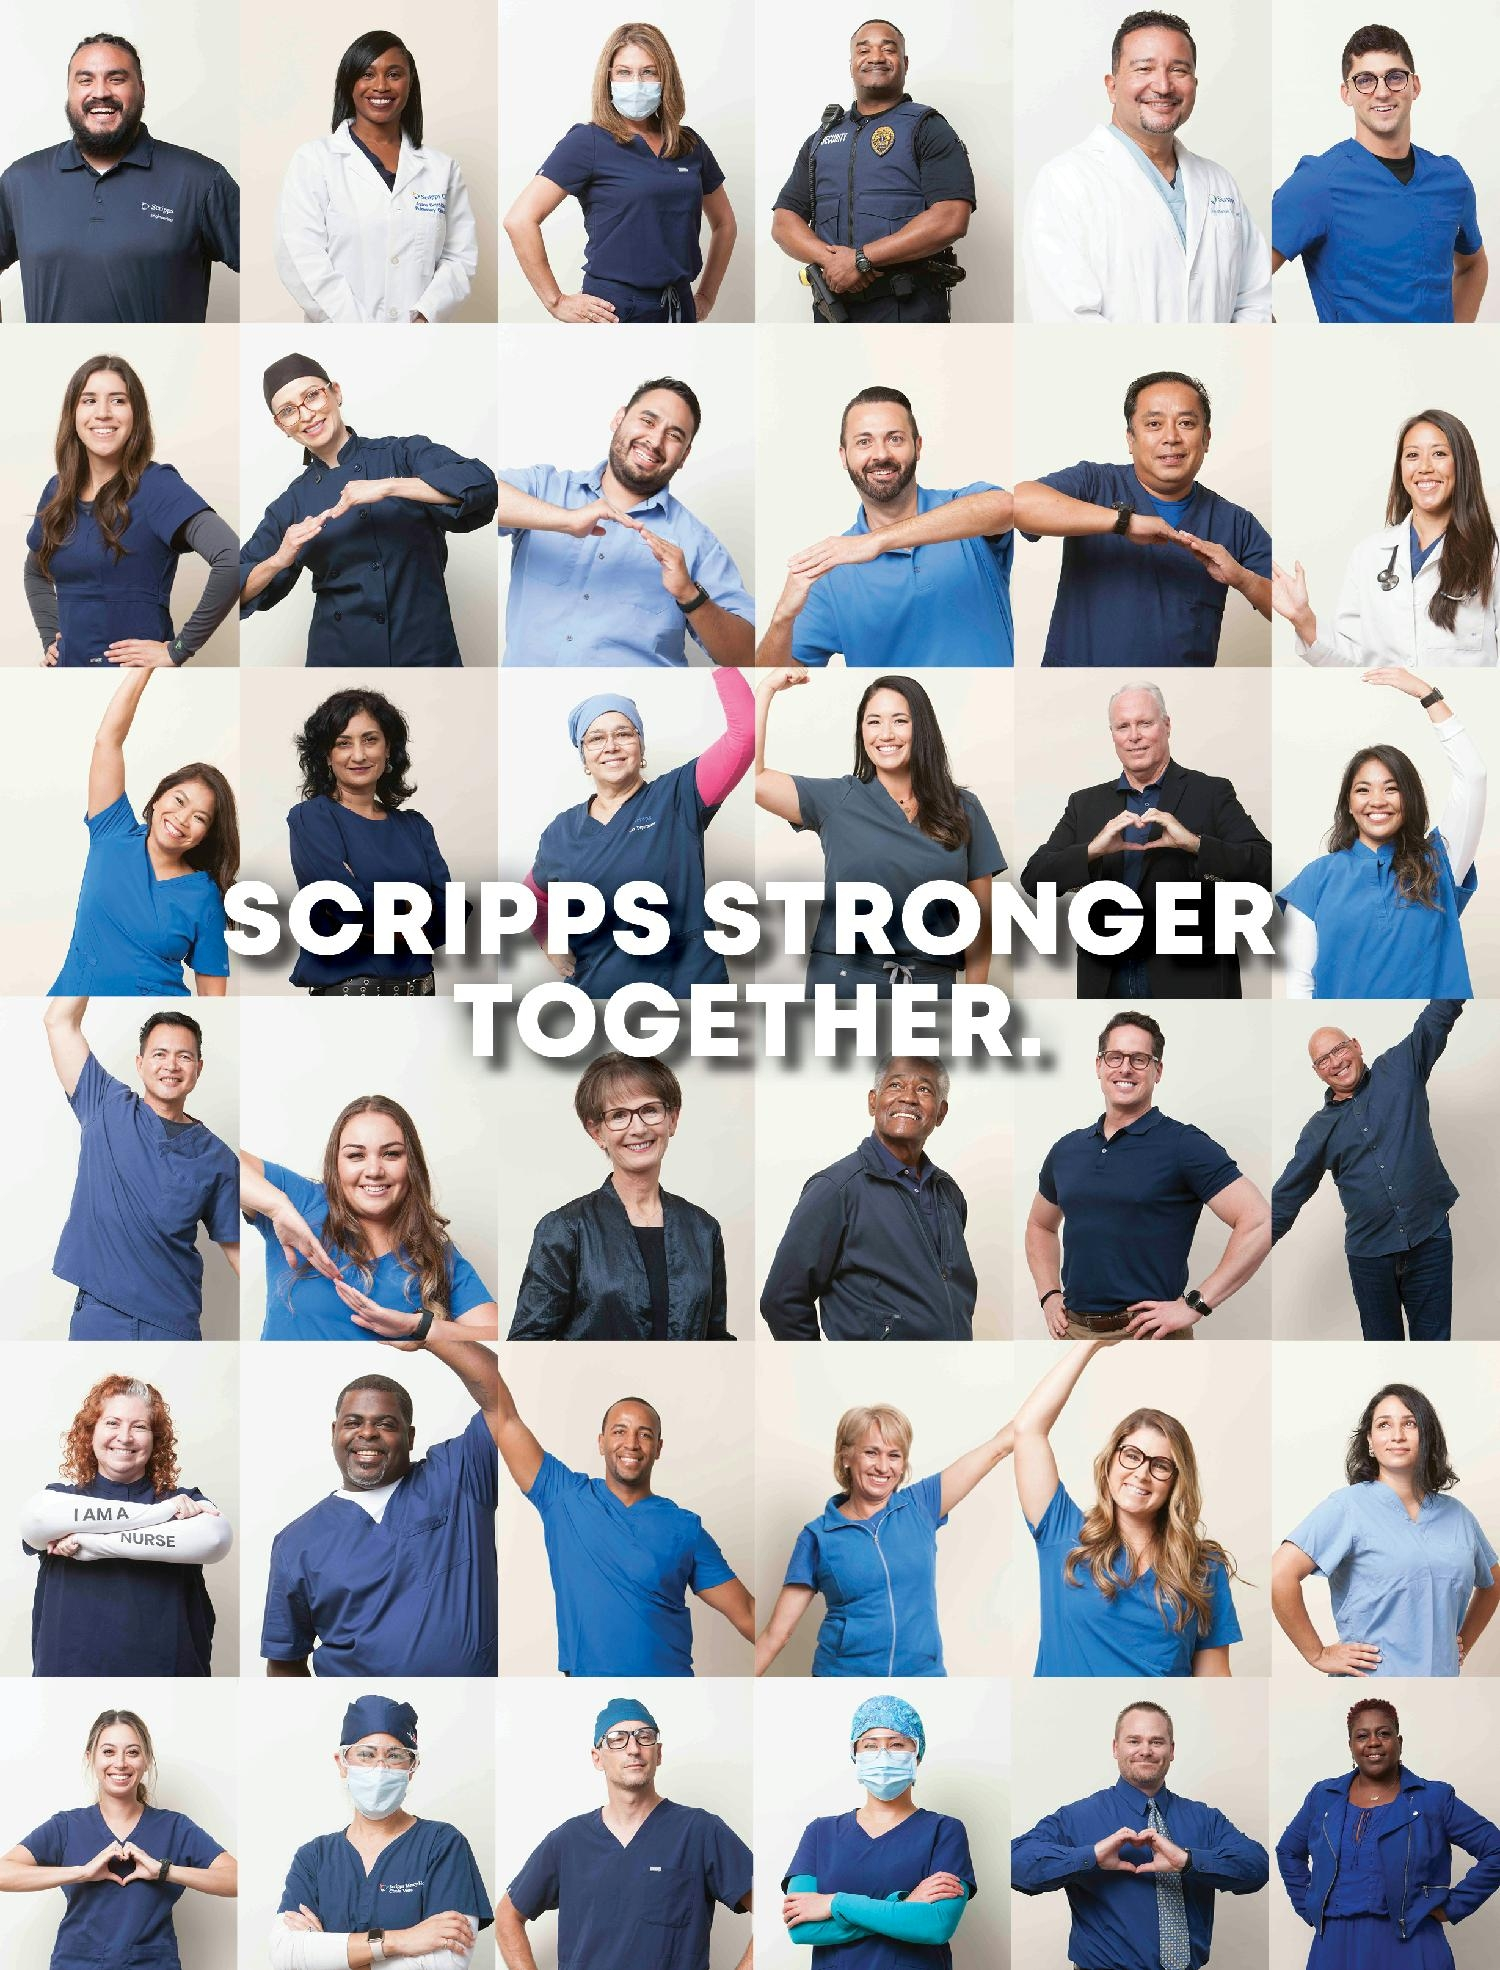 Scripps Health Photo